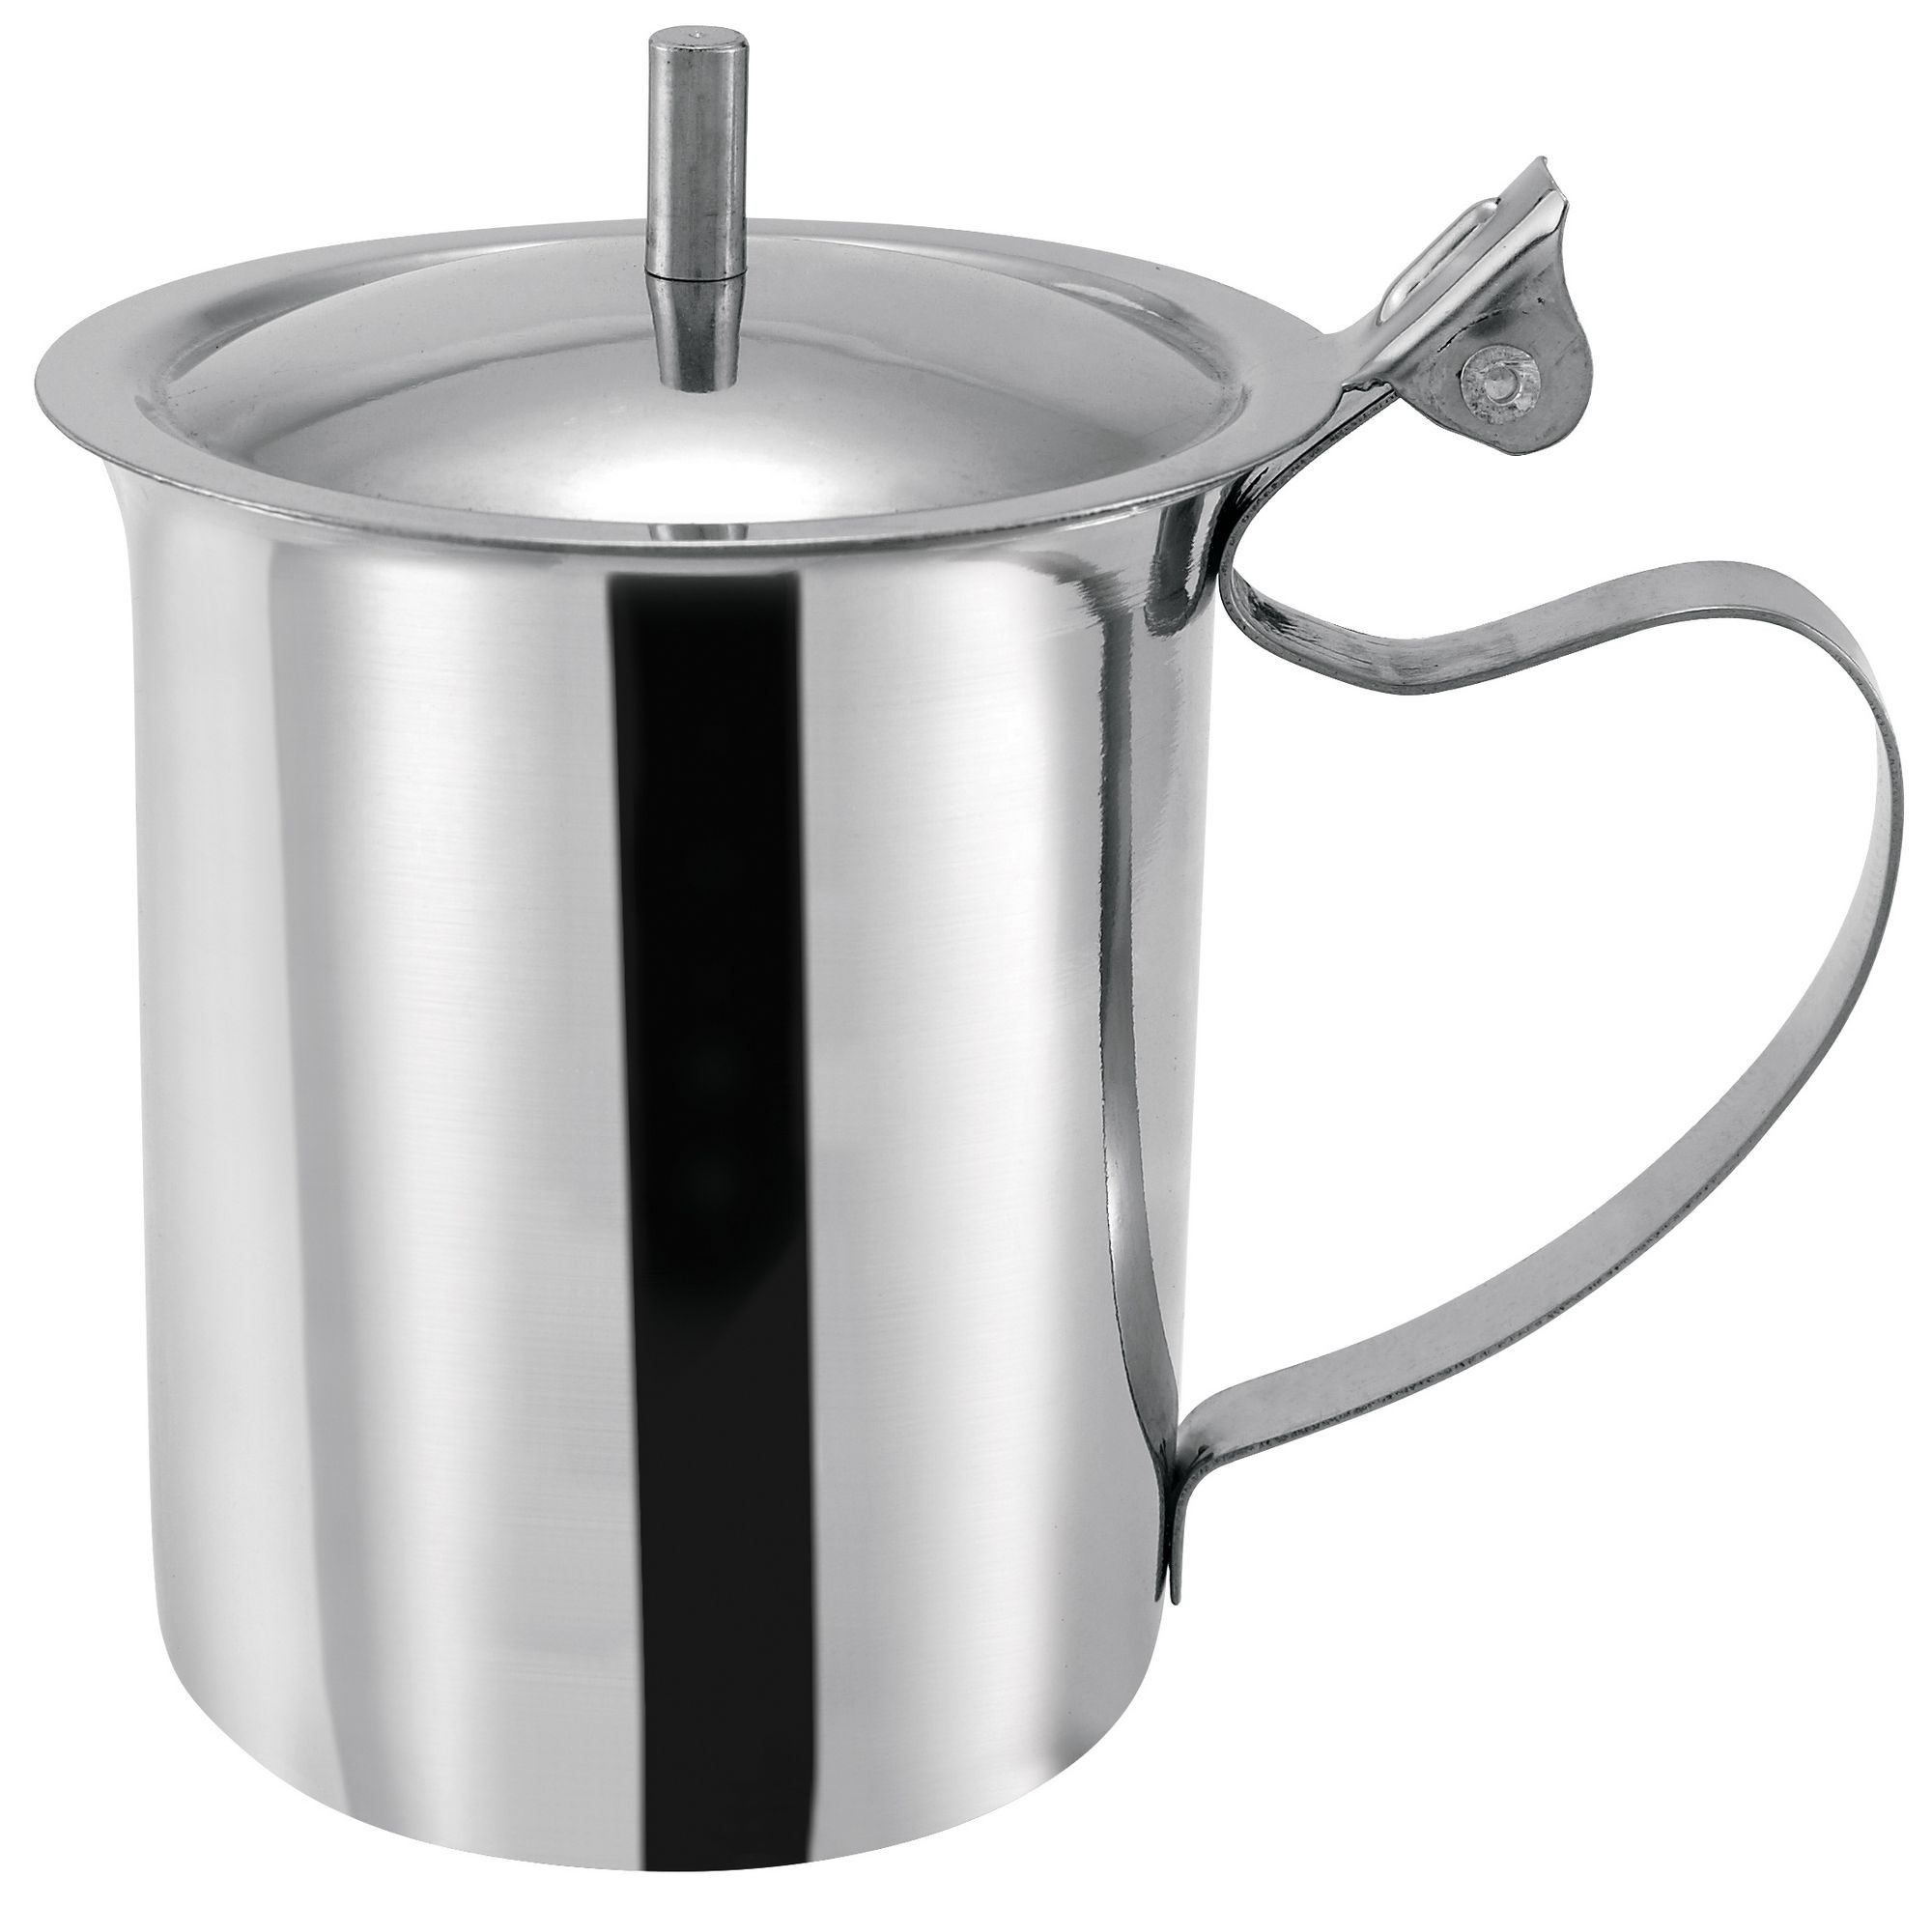 Winco sct-10 Stainless Steel 10 oz. Server/Creamer with Cover